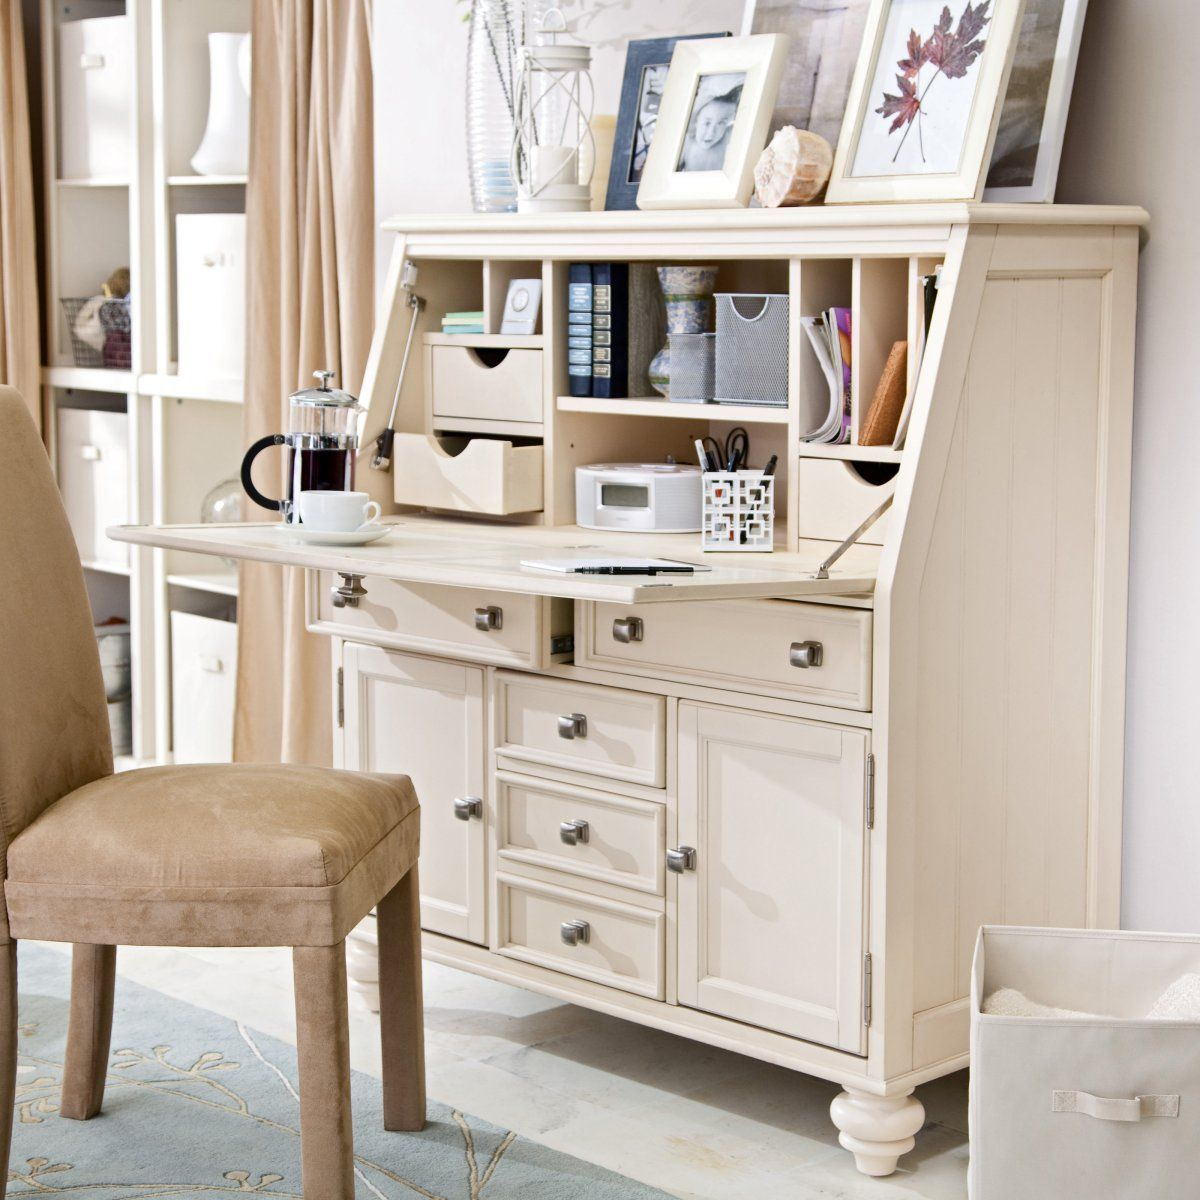 Camden Drop Lid Secretary Desk Cream Www Hayneedle Com White Secretary Desk Desks For Small Spaces Secretary Desks